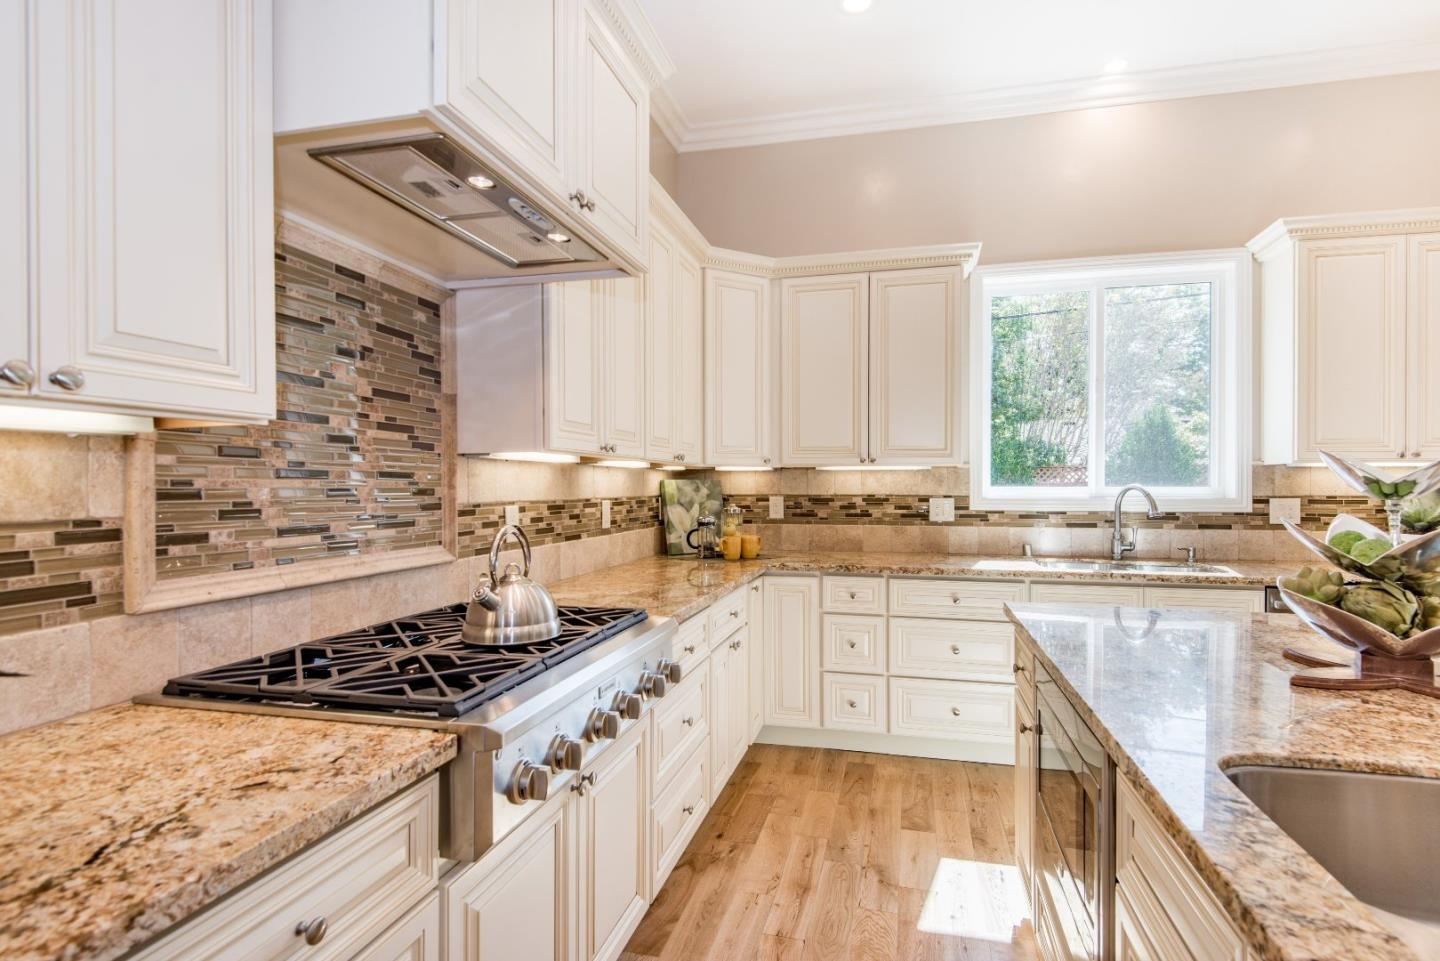 Additional photo for property listing at 1442 Gerhardt Ave  SAN JOSE, CALIFORNIA 95125